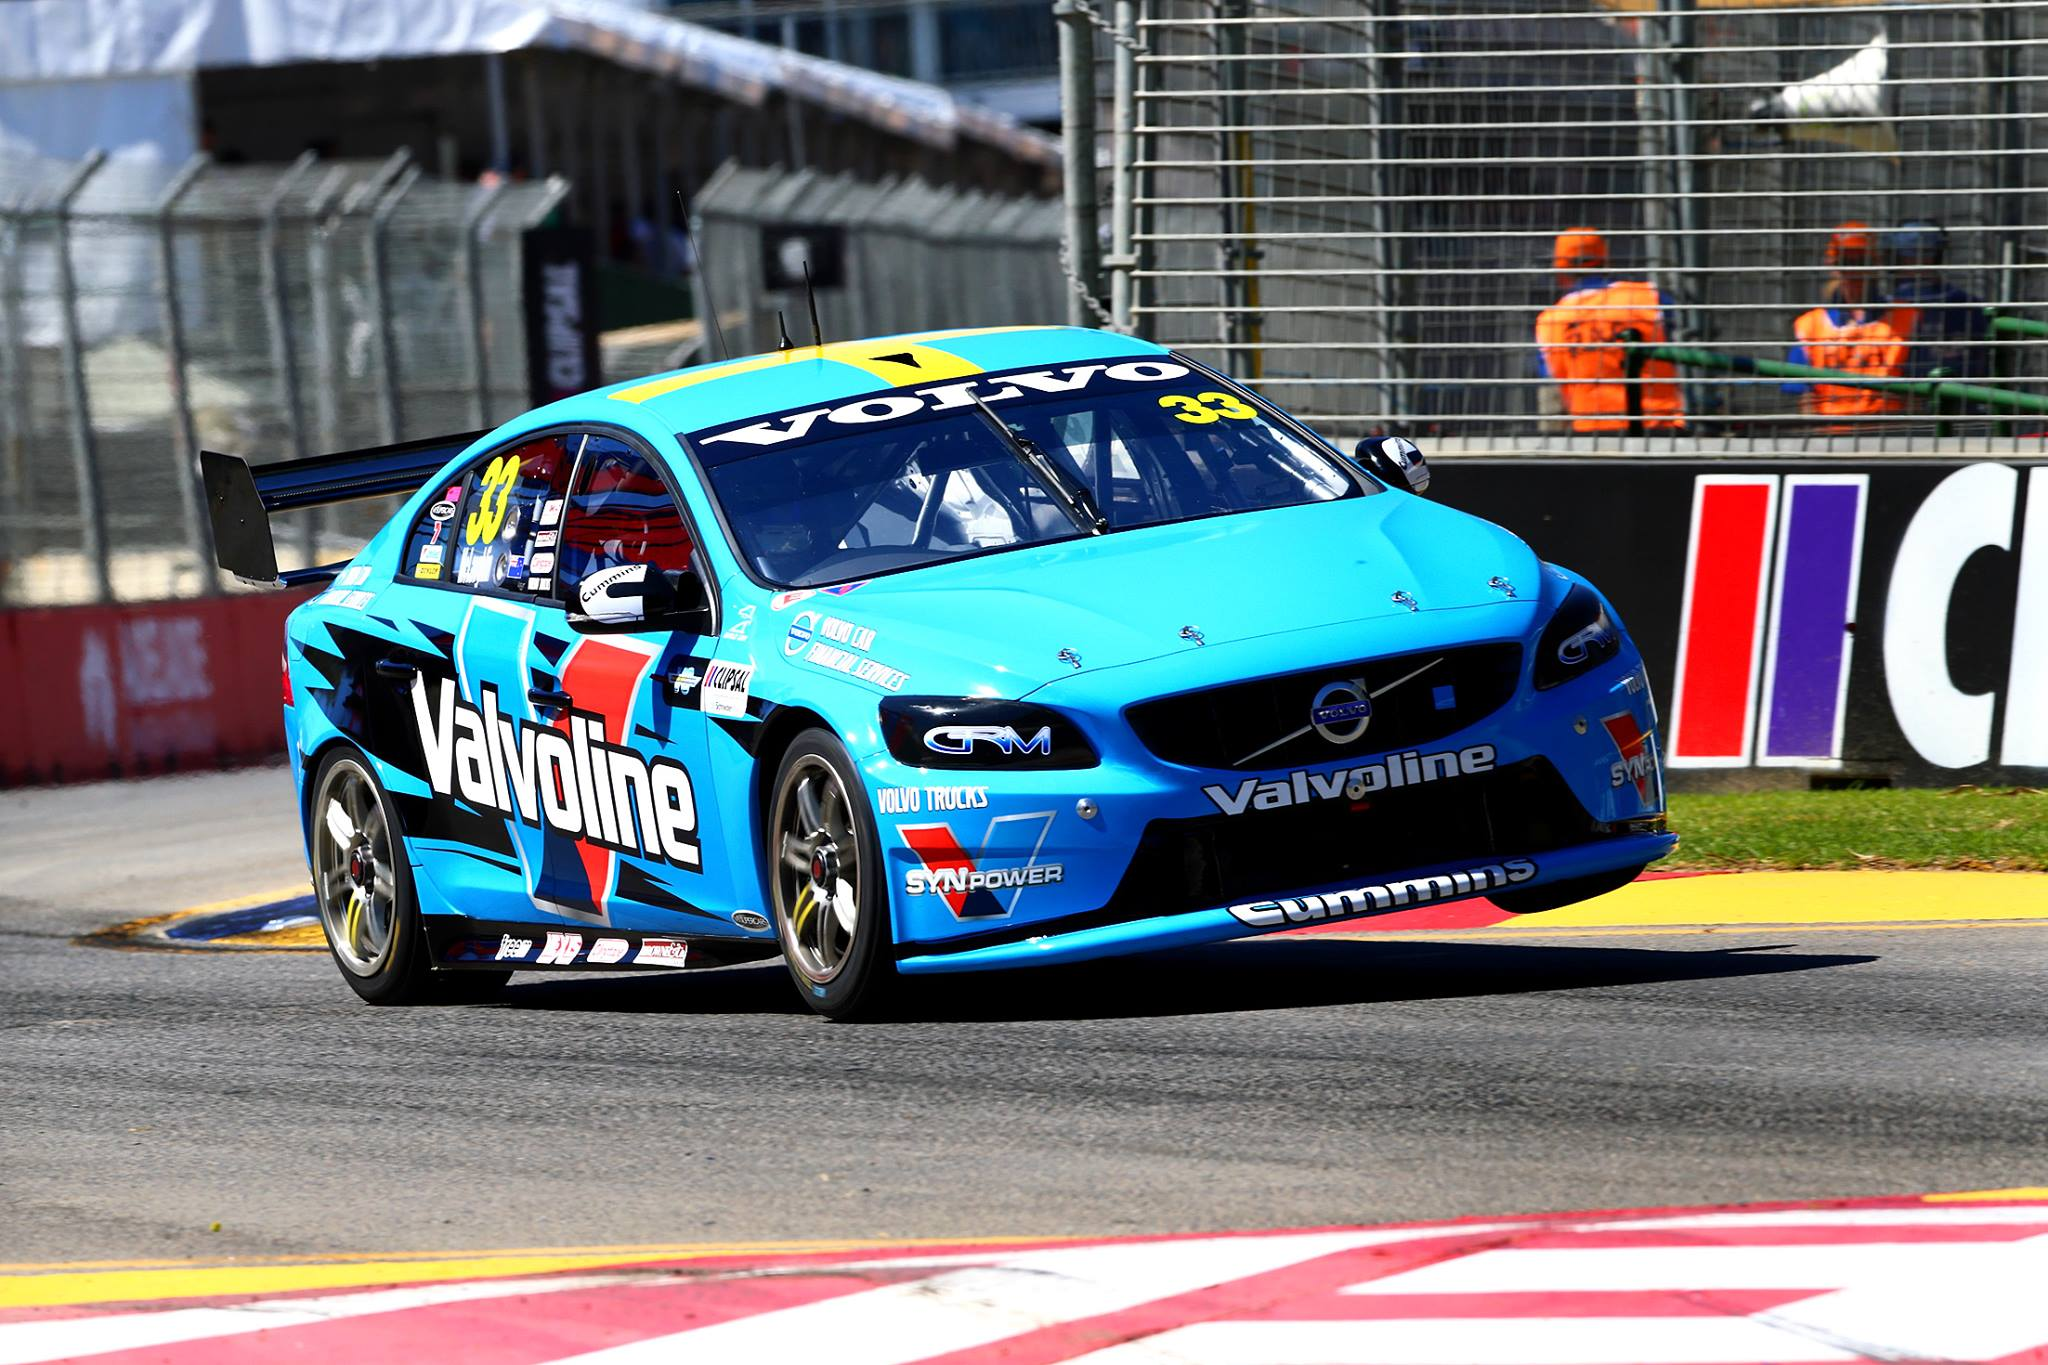 V8 Supercars HD Wallpapers Hd Wallpapers 2048x1365